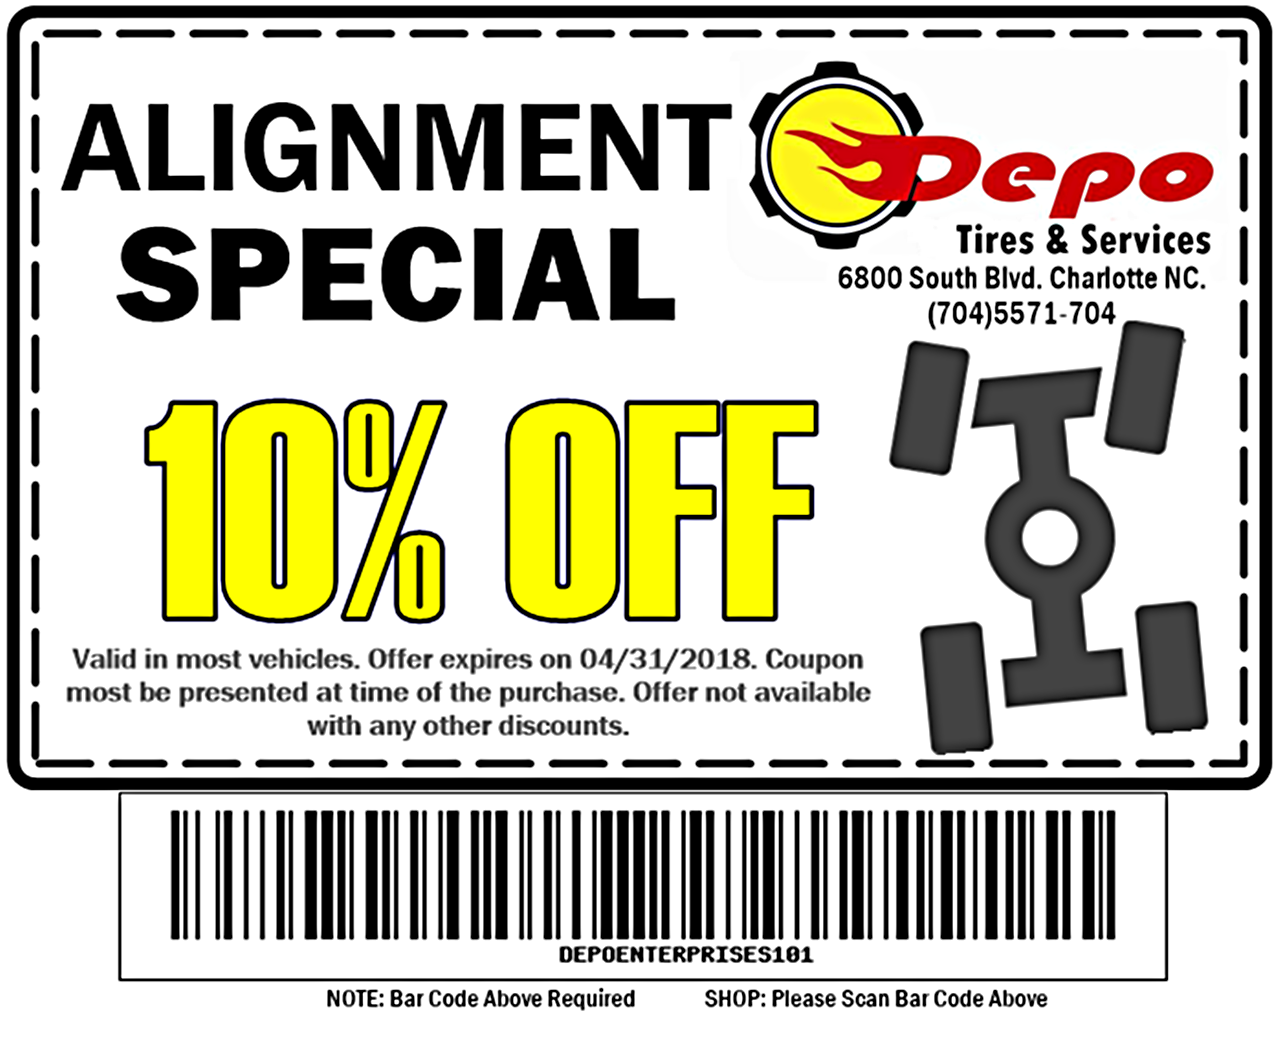 Depo Tires and Services image 2